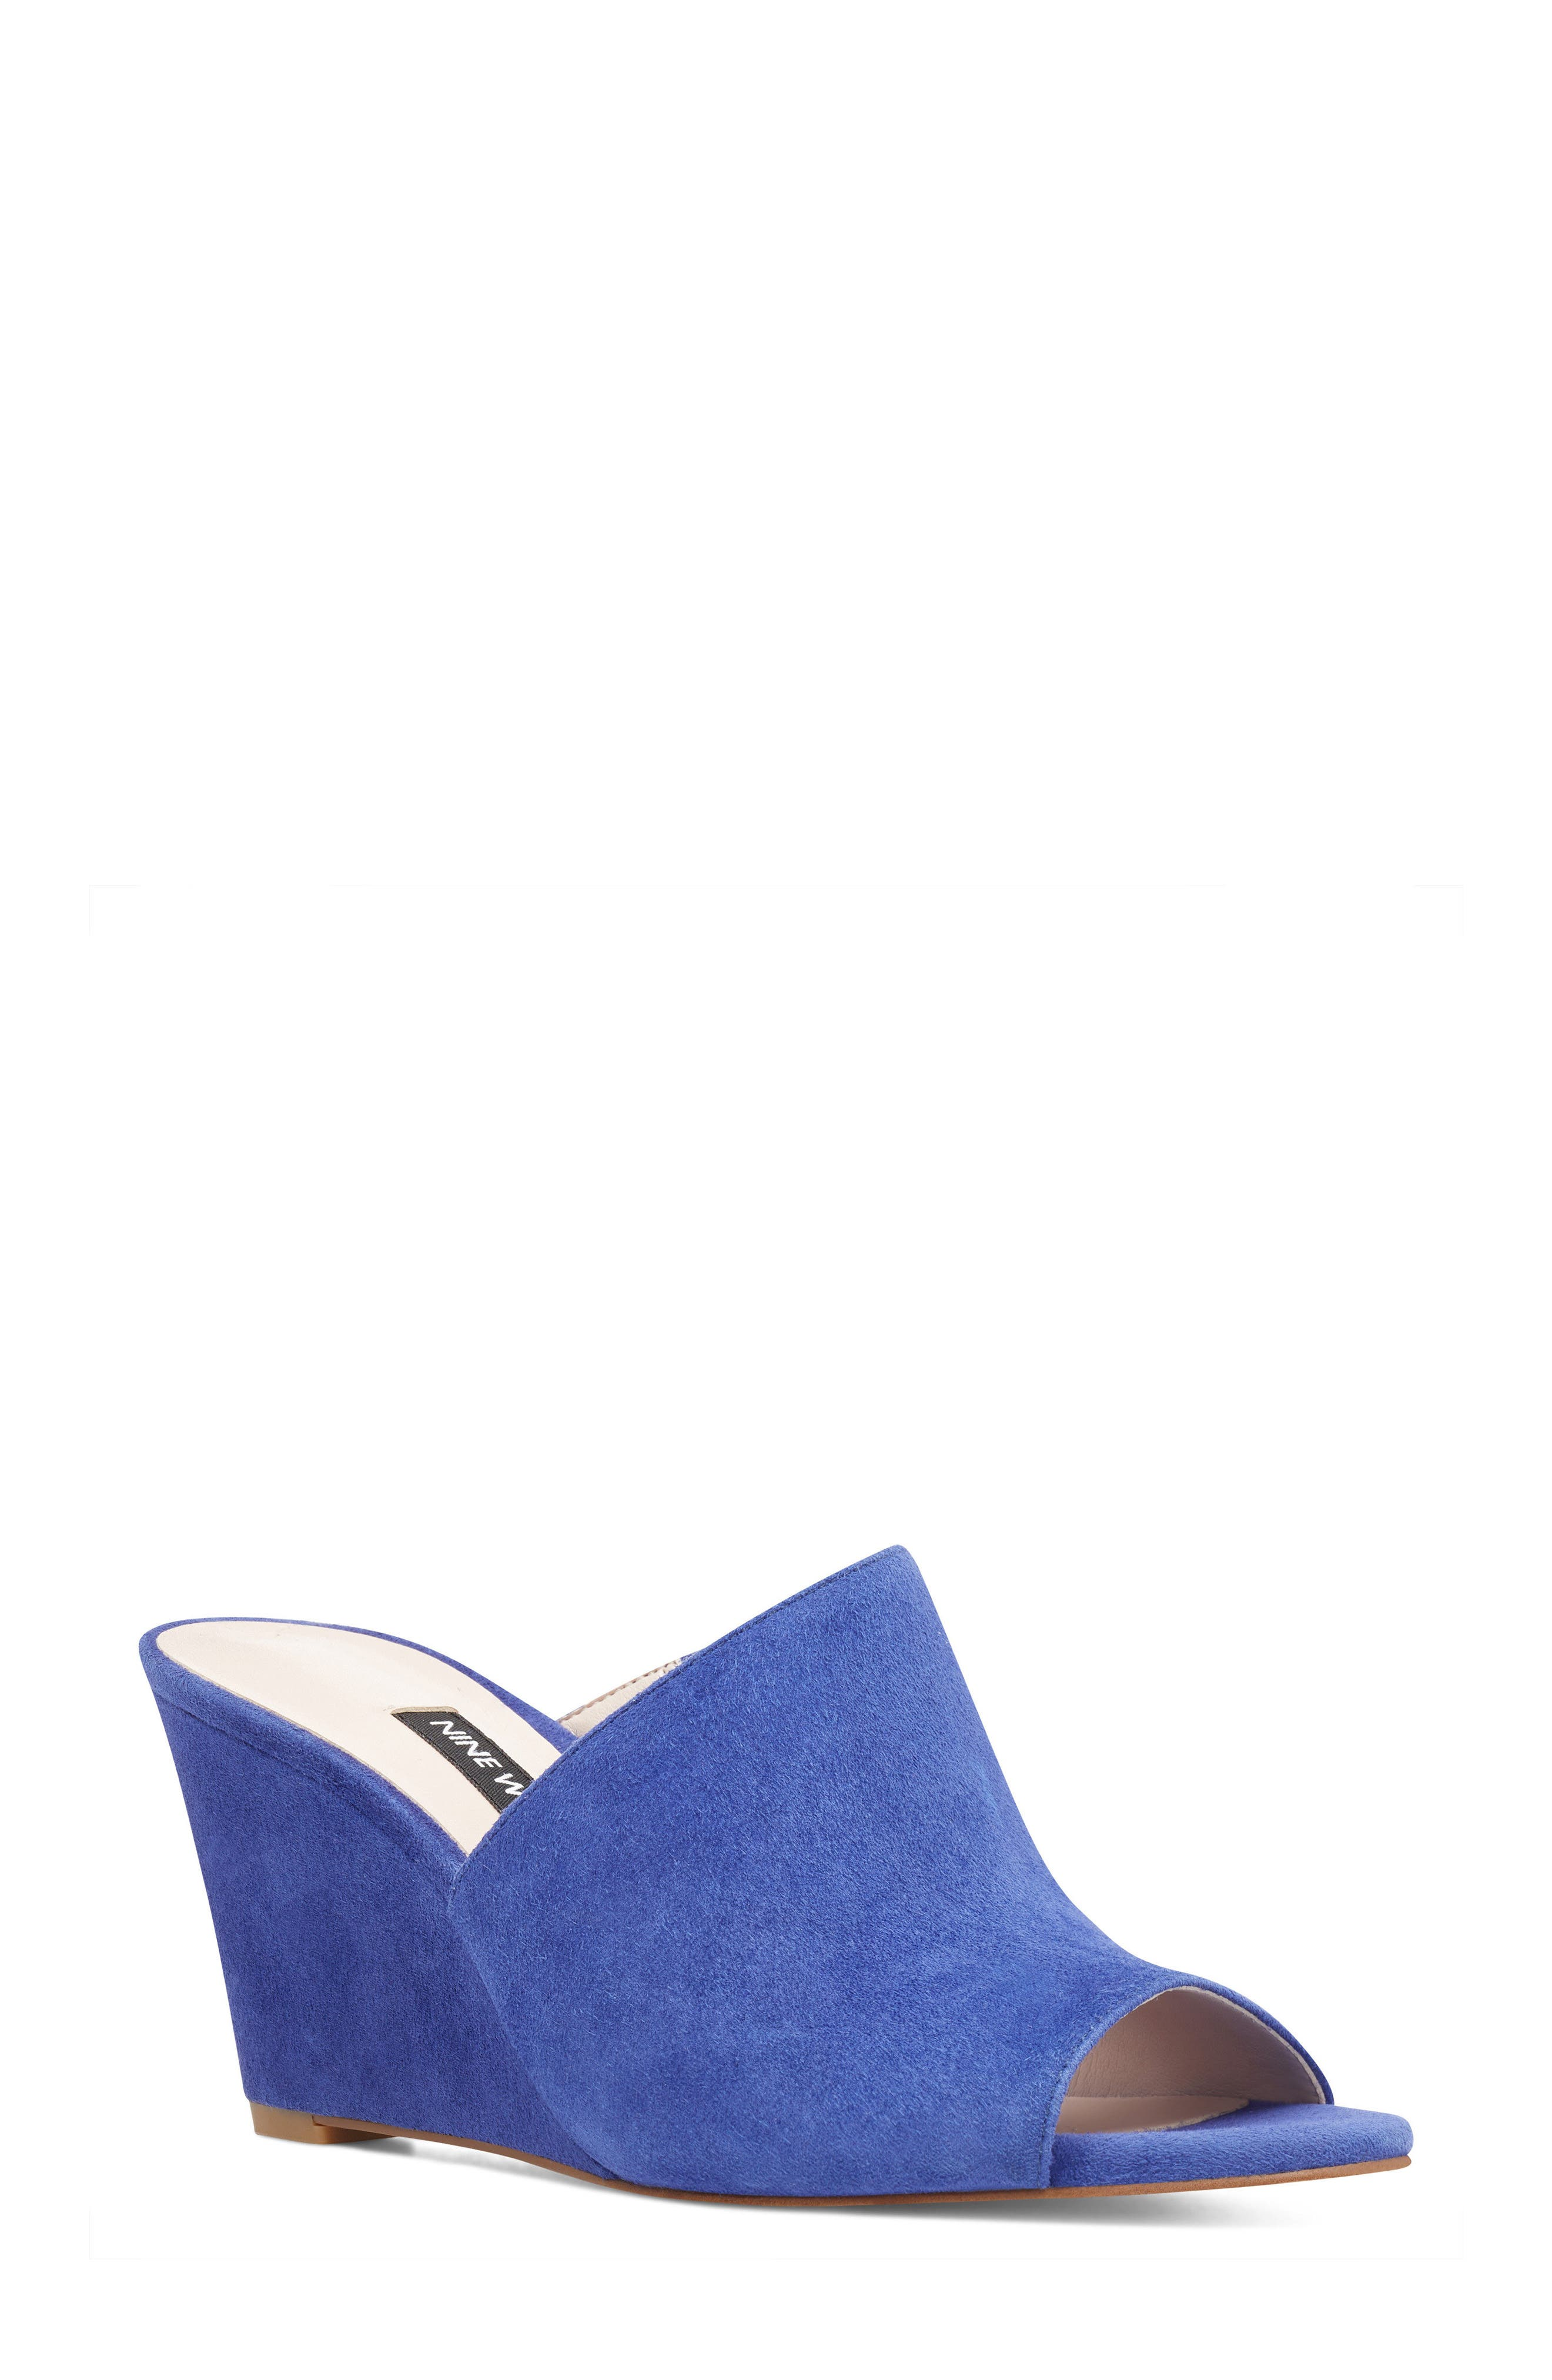 Janissah Wedge,                         Main,                         color, DARK BLUE SUEDE